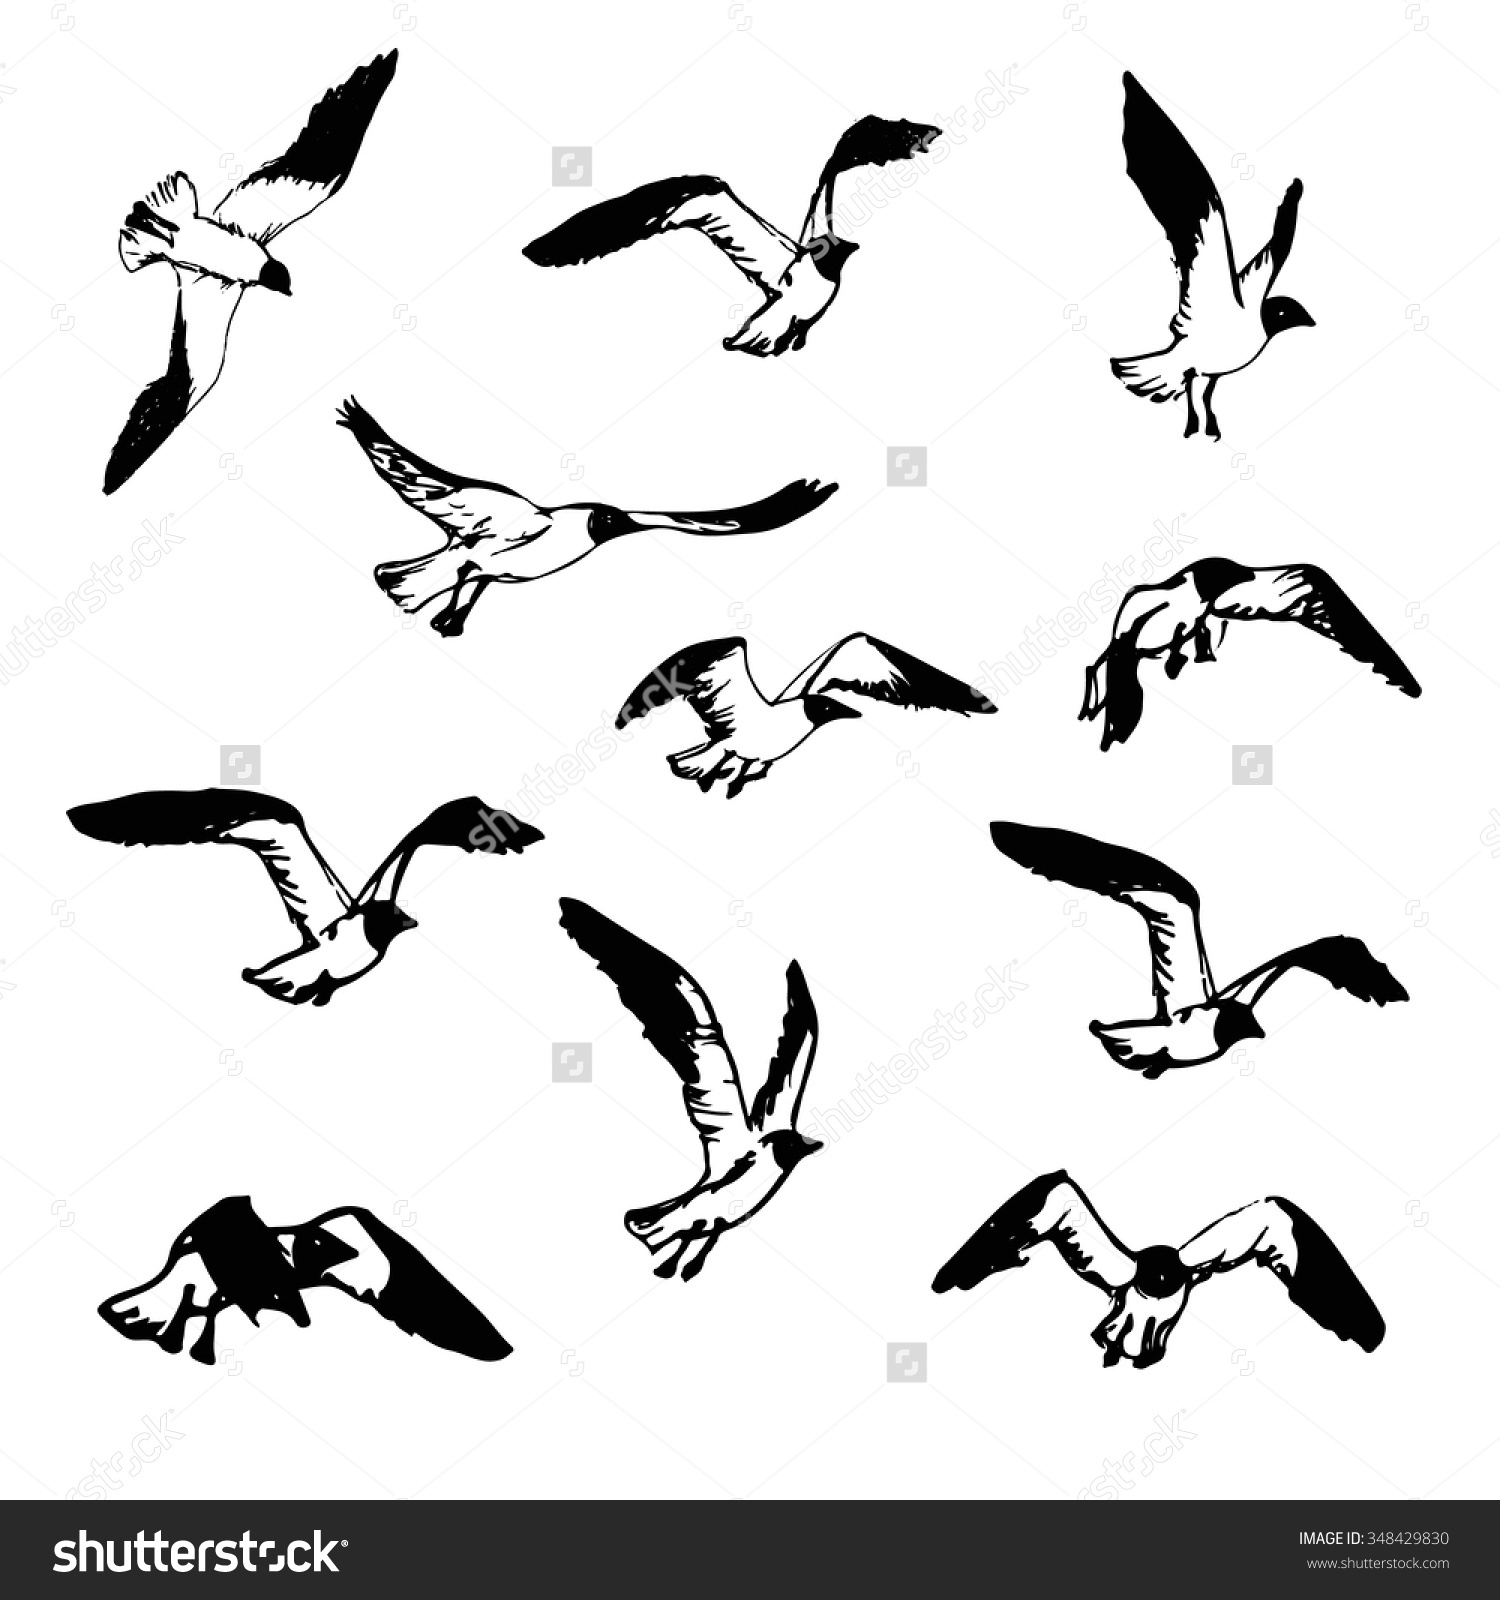 1500x1600 Drawing Birds In Flight Bird In Flight Sketchsilentdreamer62